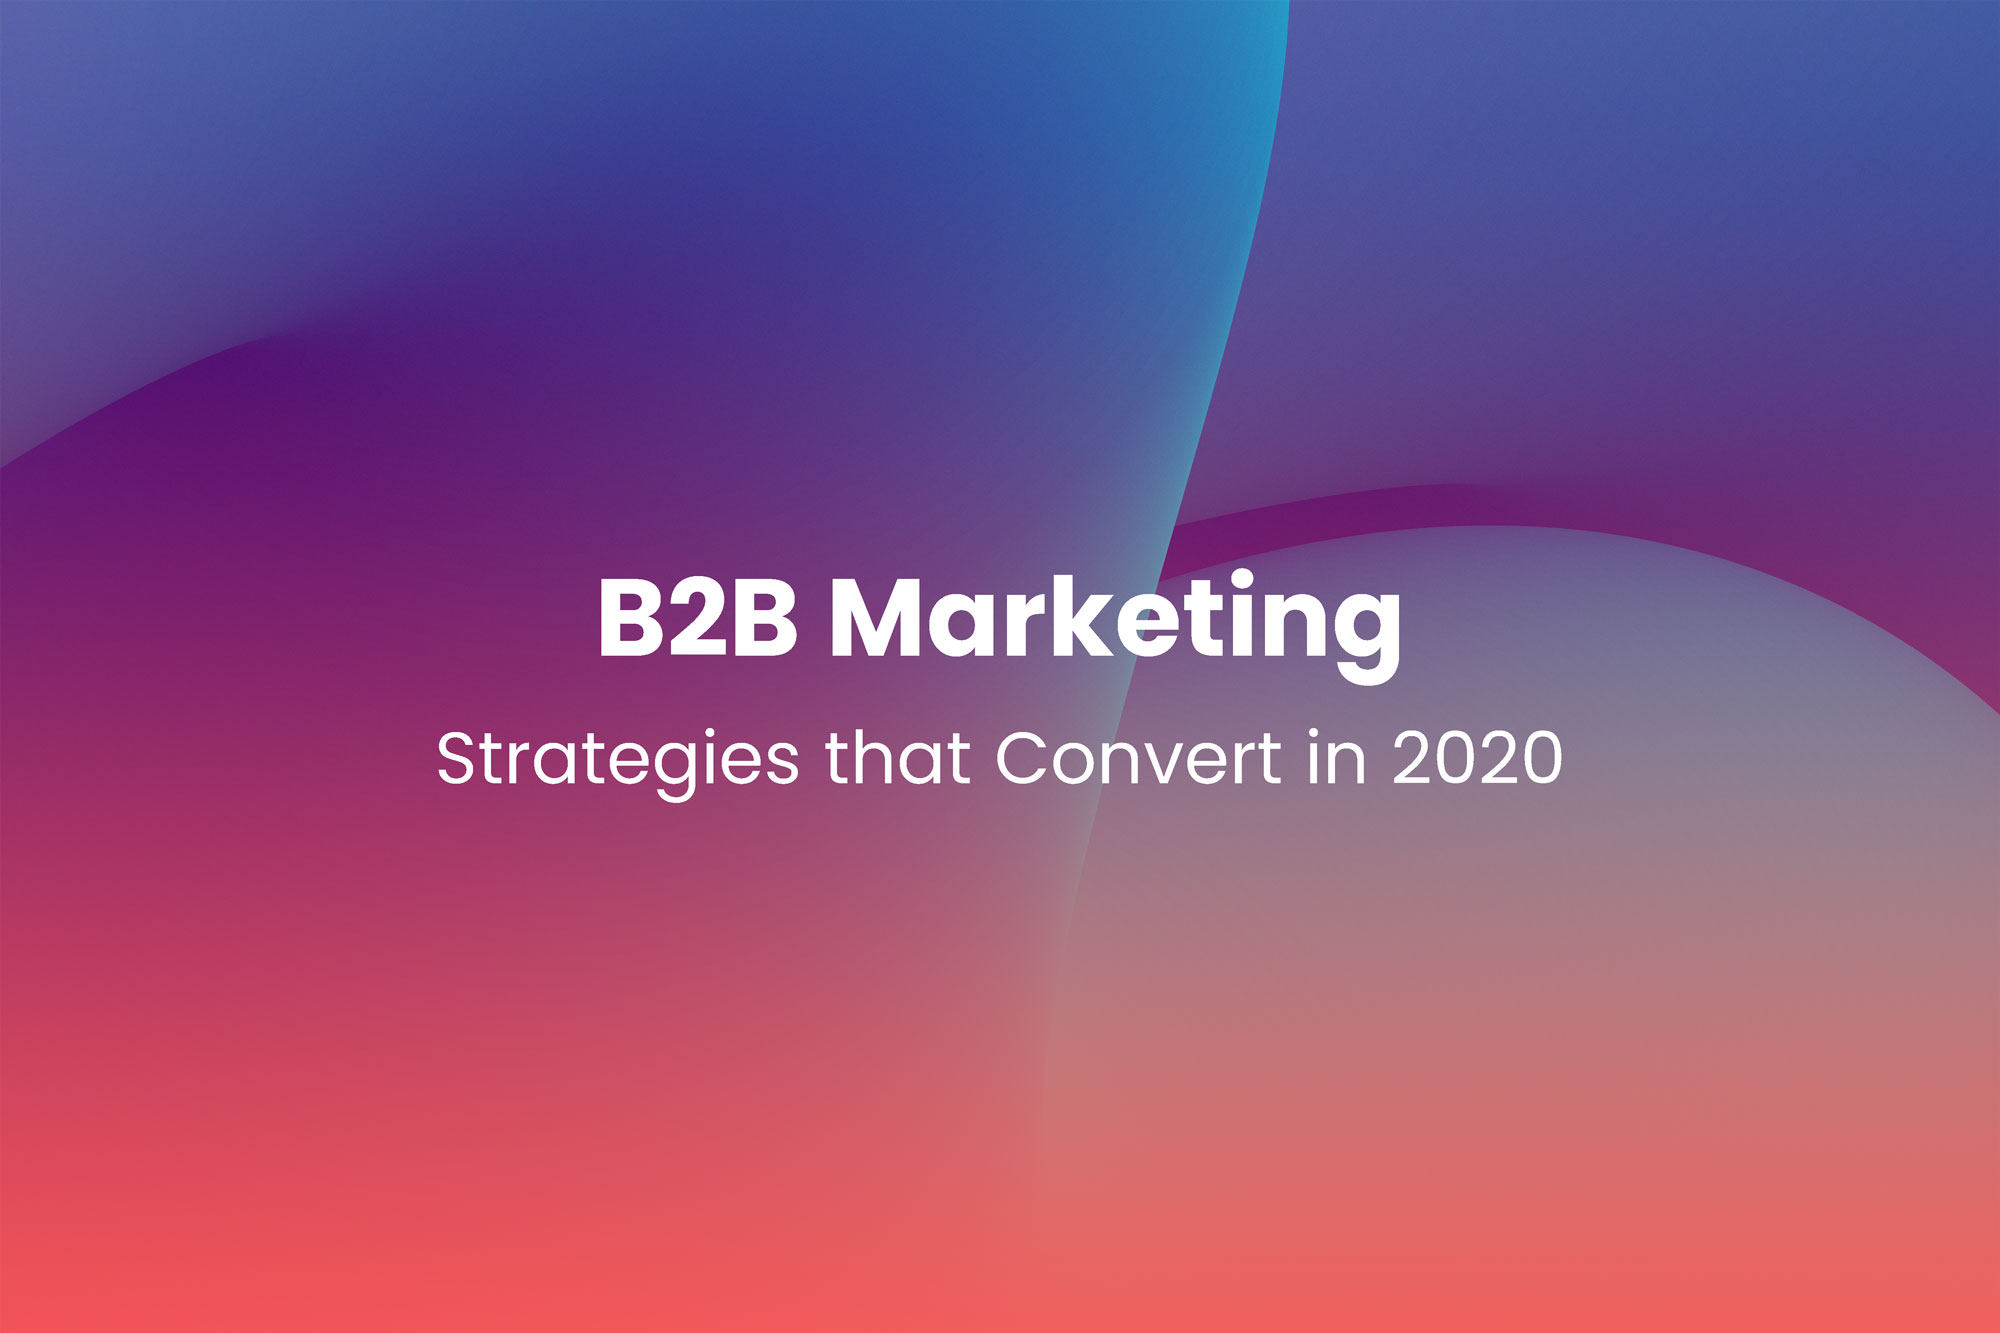 B2B Marketing Strategies that Convert in 2020